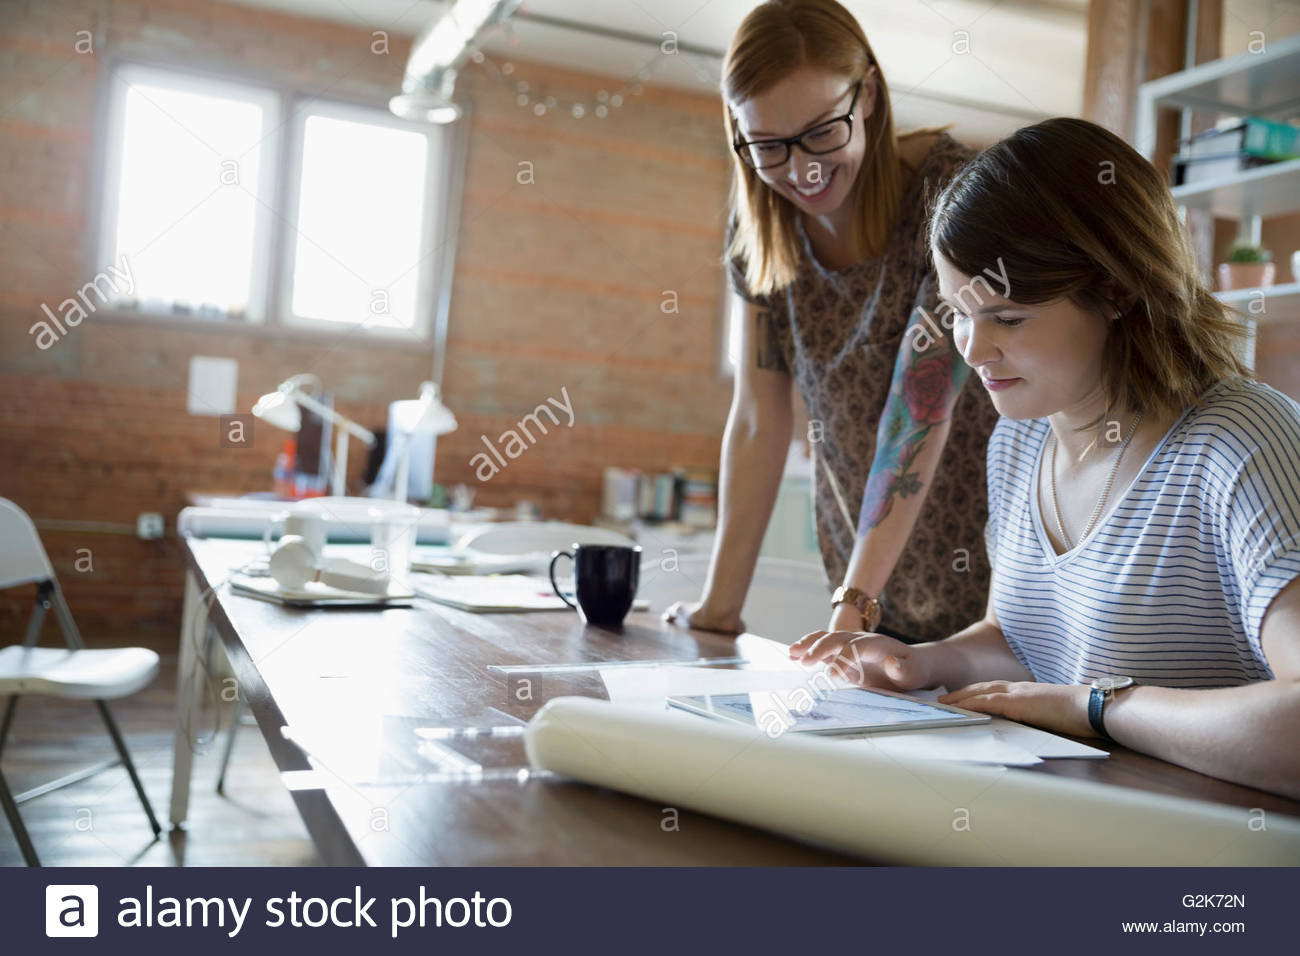 Designers using digital tablet in office Photo Stock